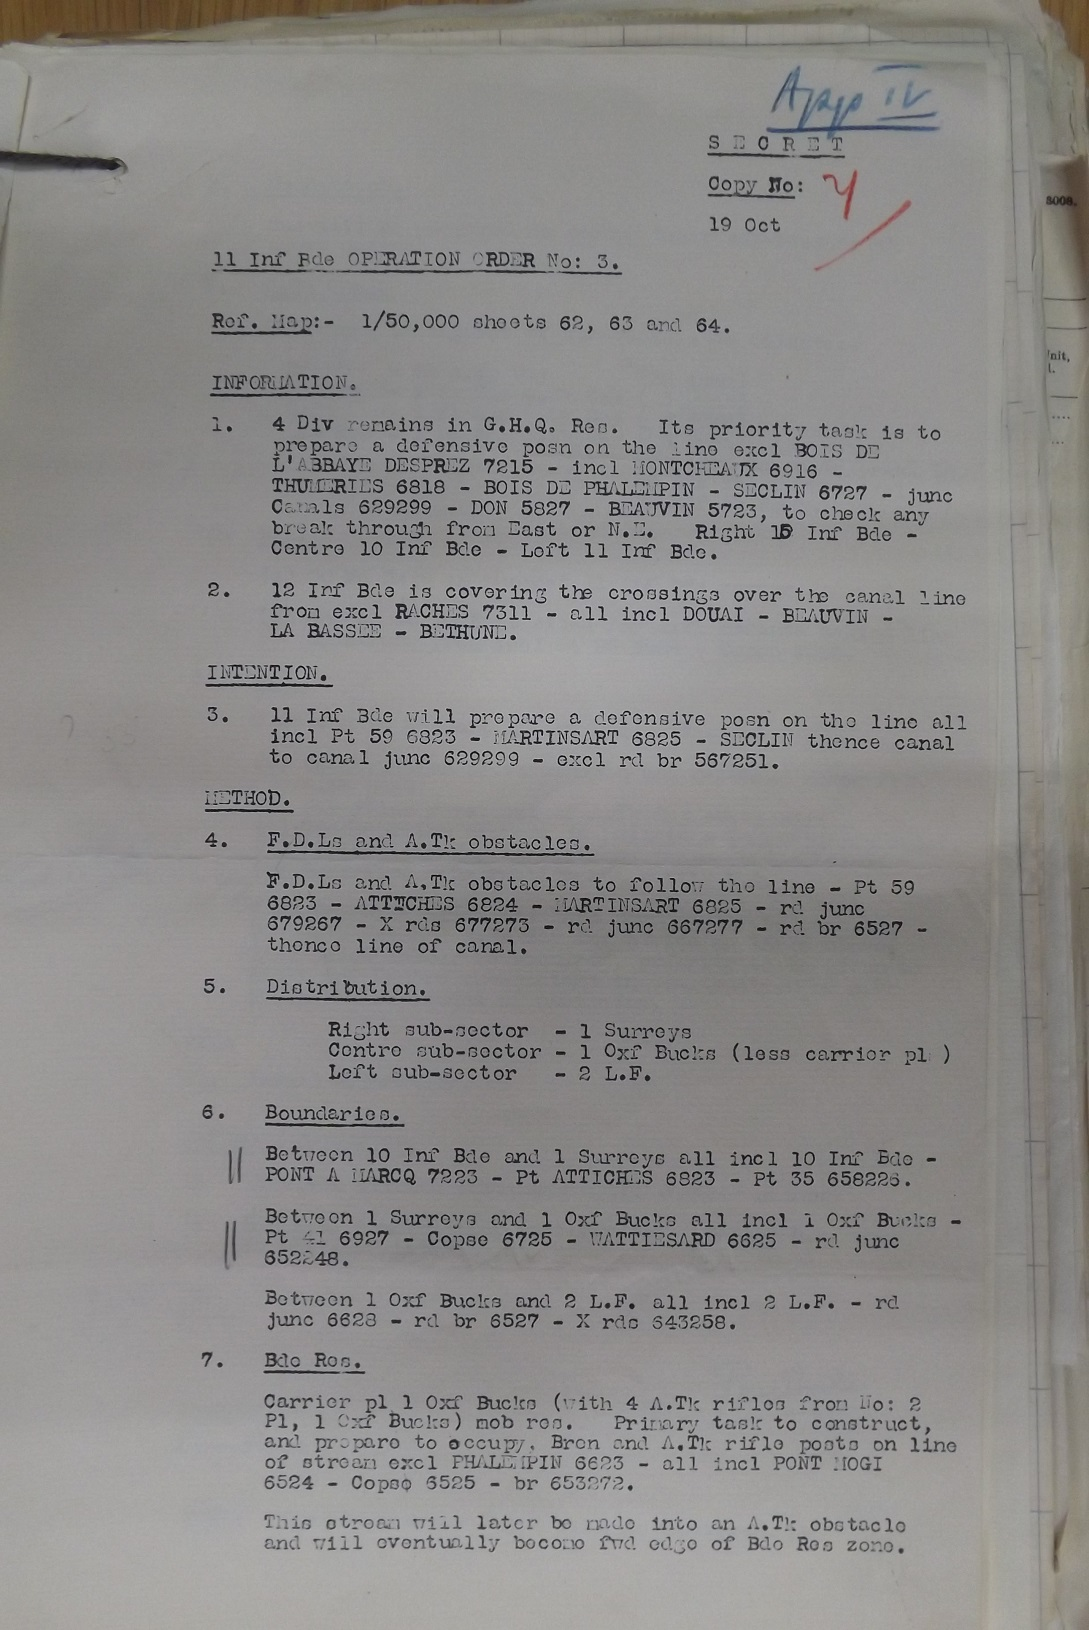 11 Inf Bde Operation Order No 3 19 Oct 1939